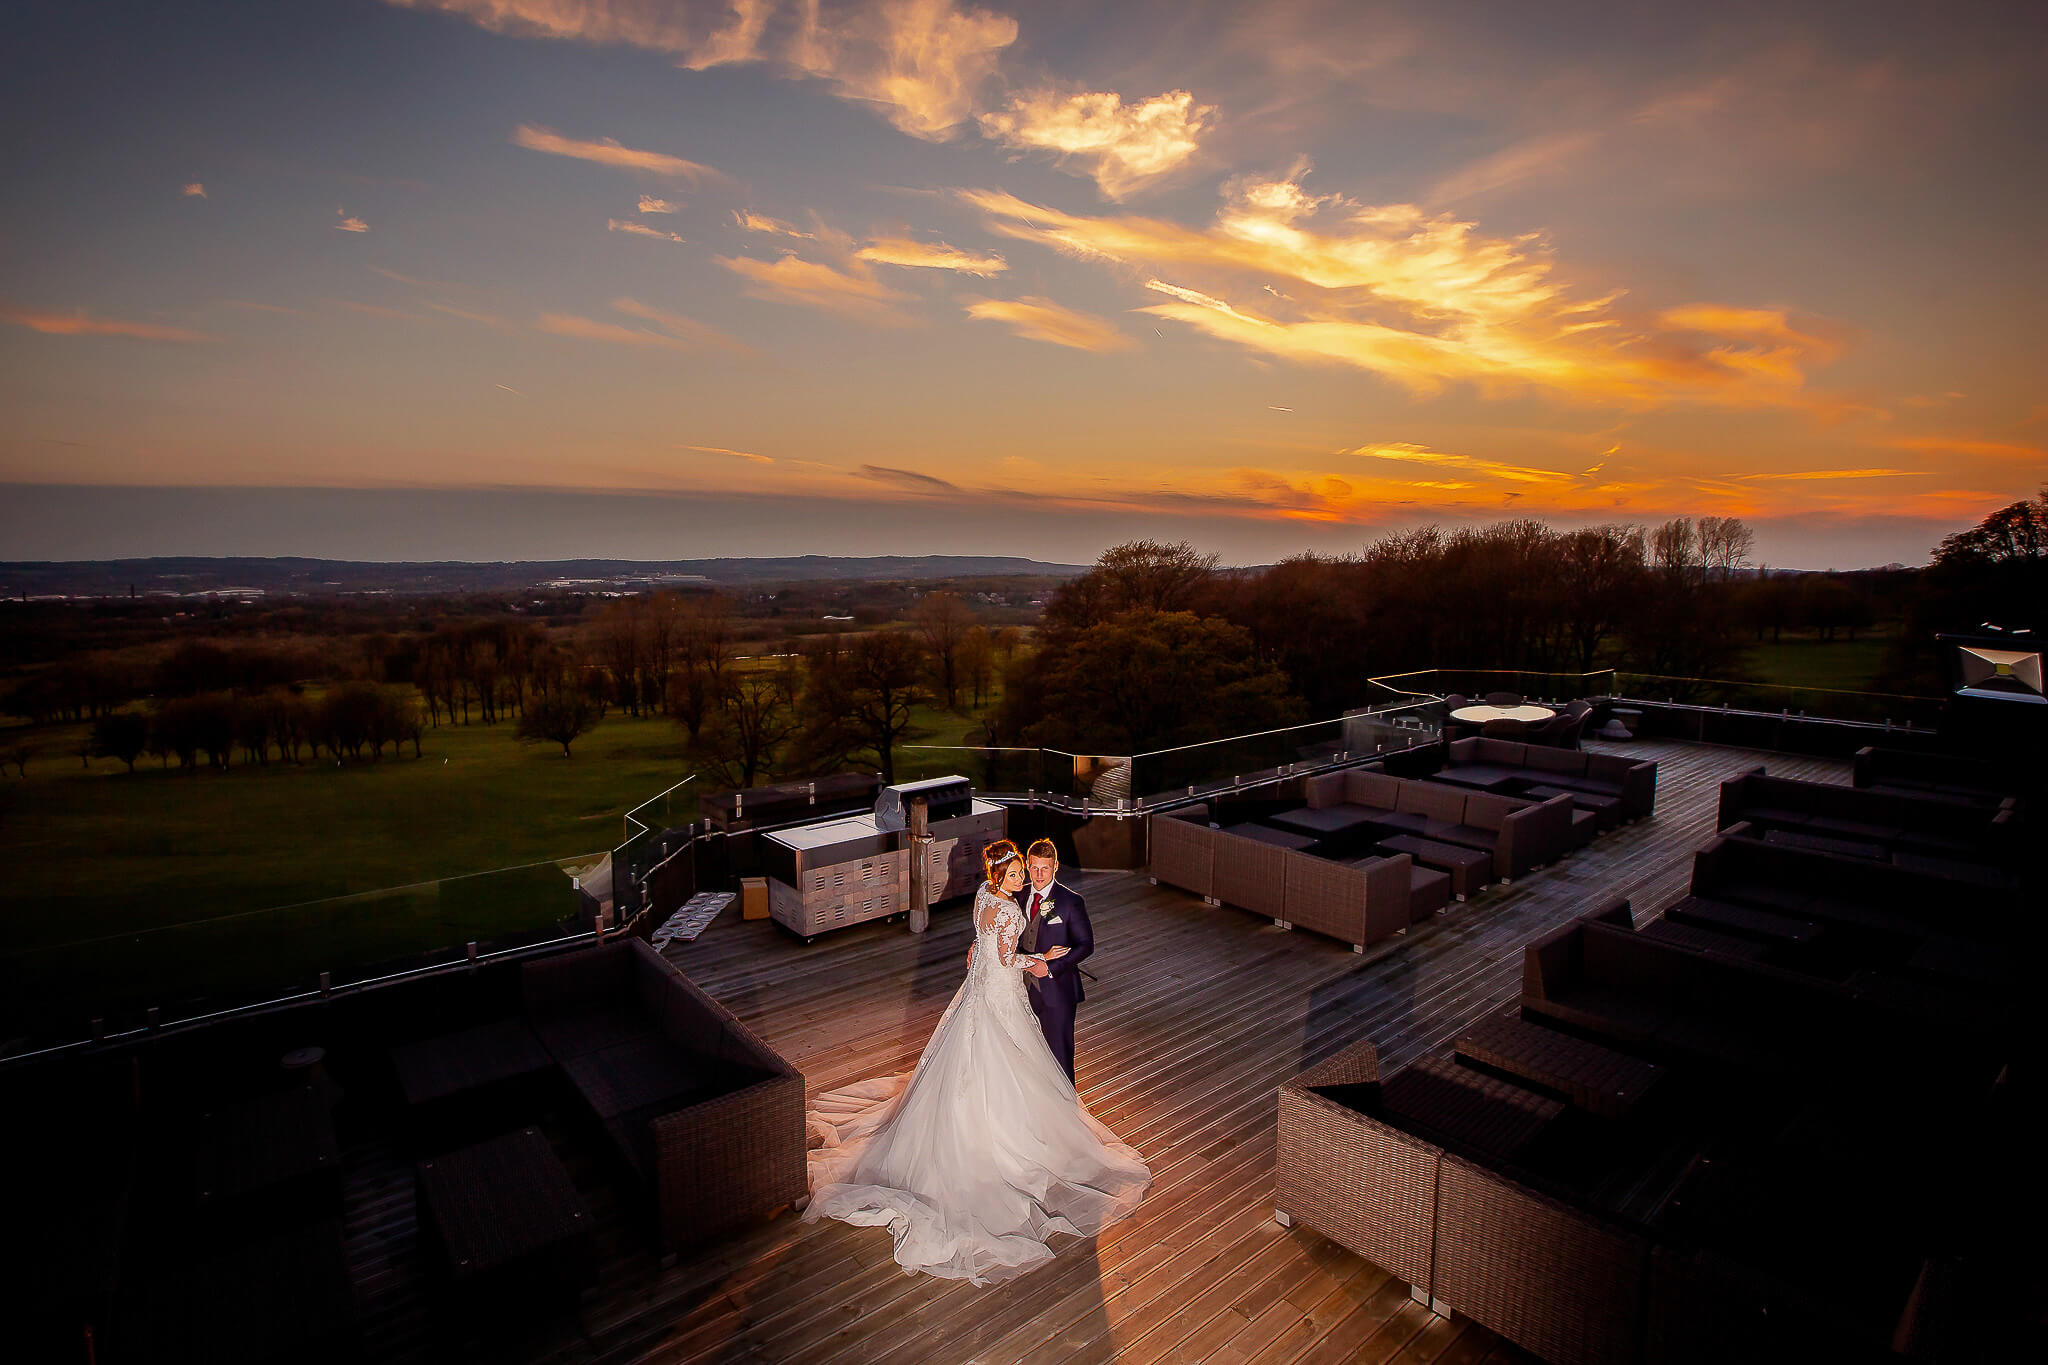 best-wedding-photographers-uk-europe-stanbury-photography-184